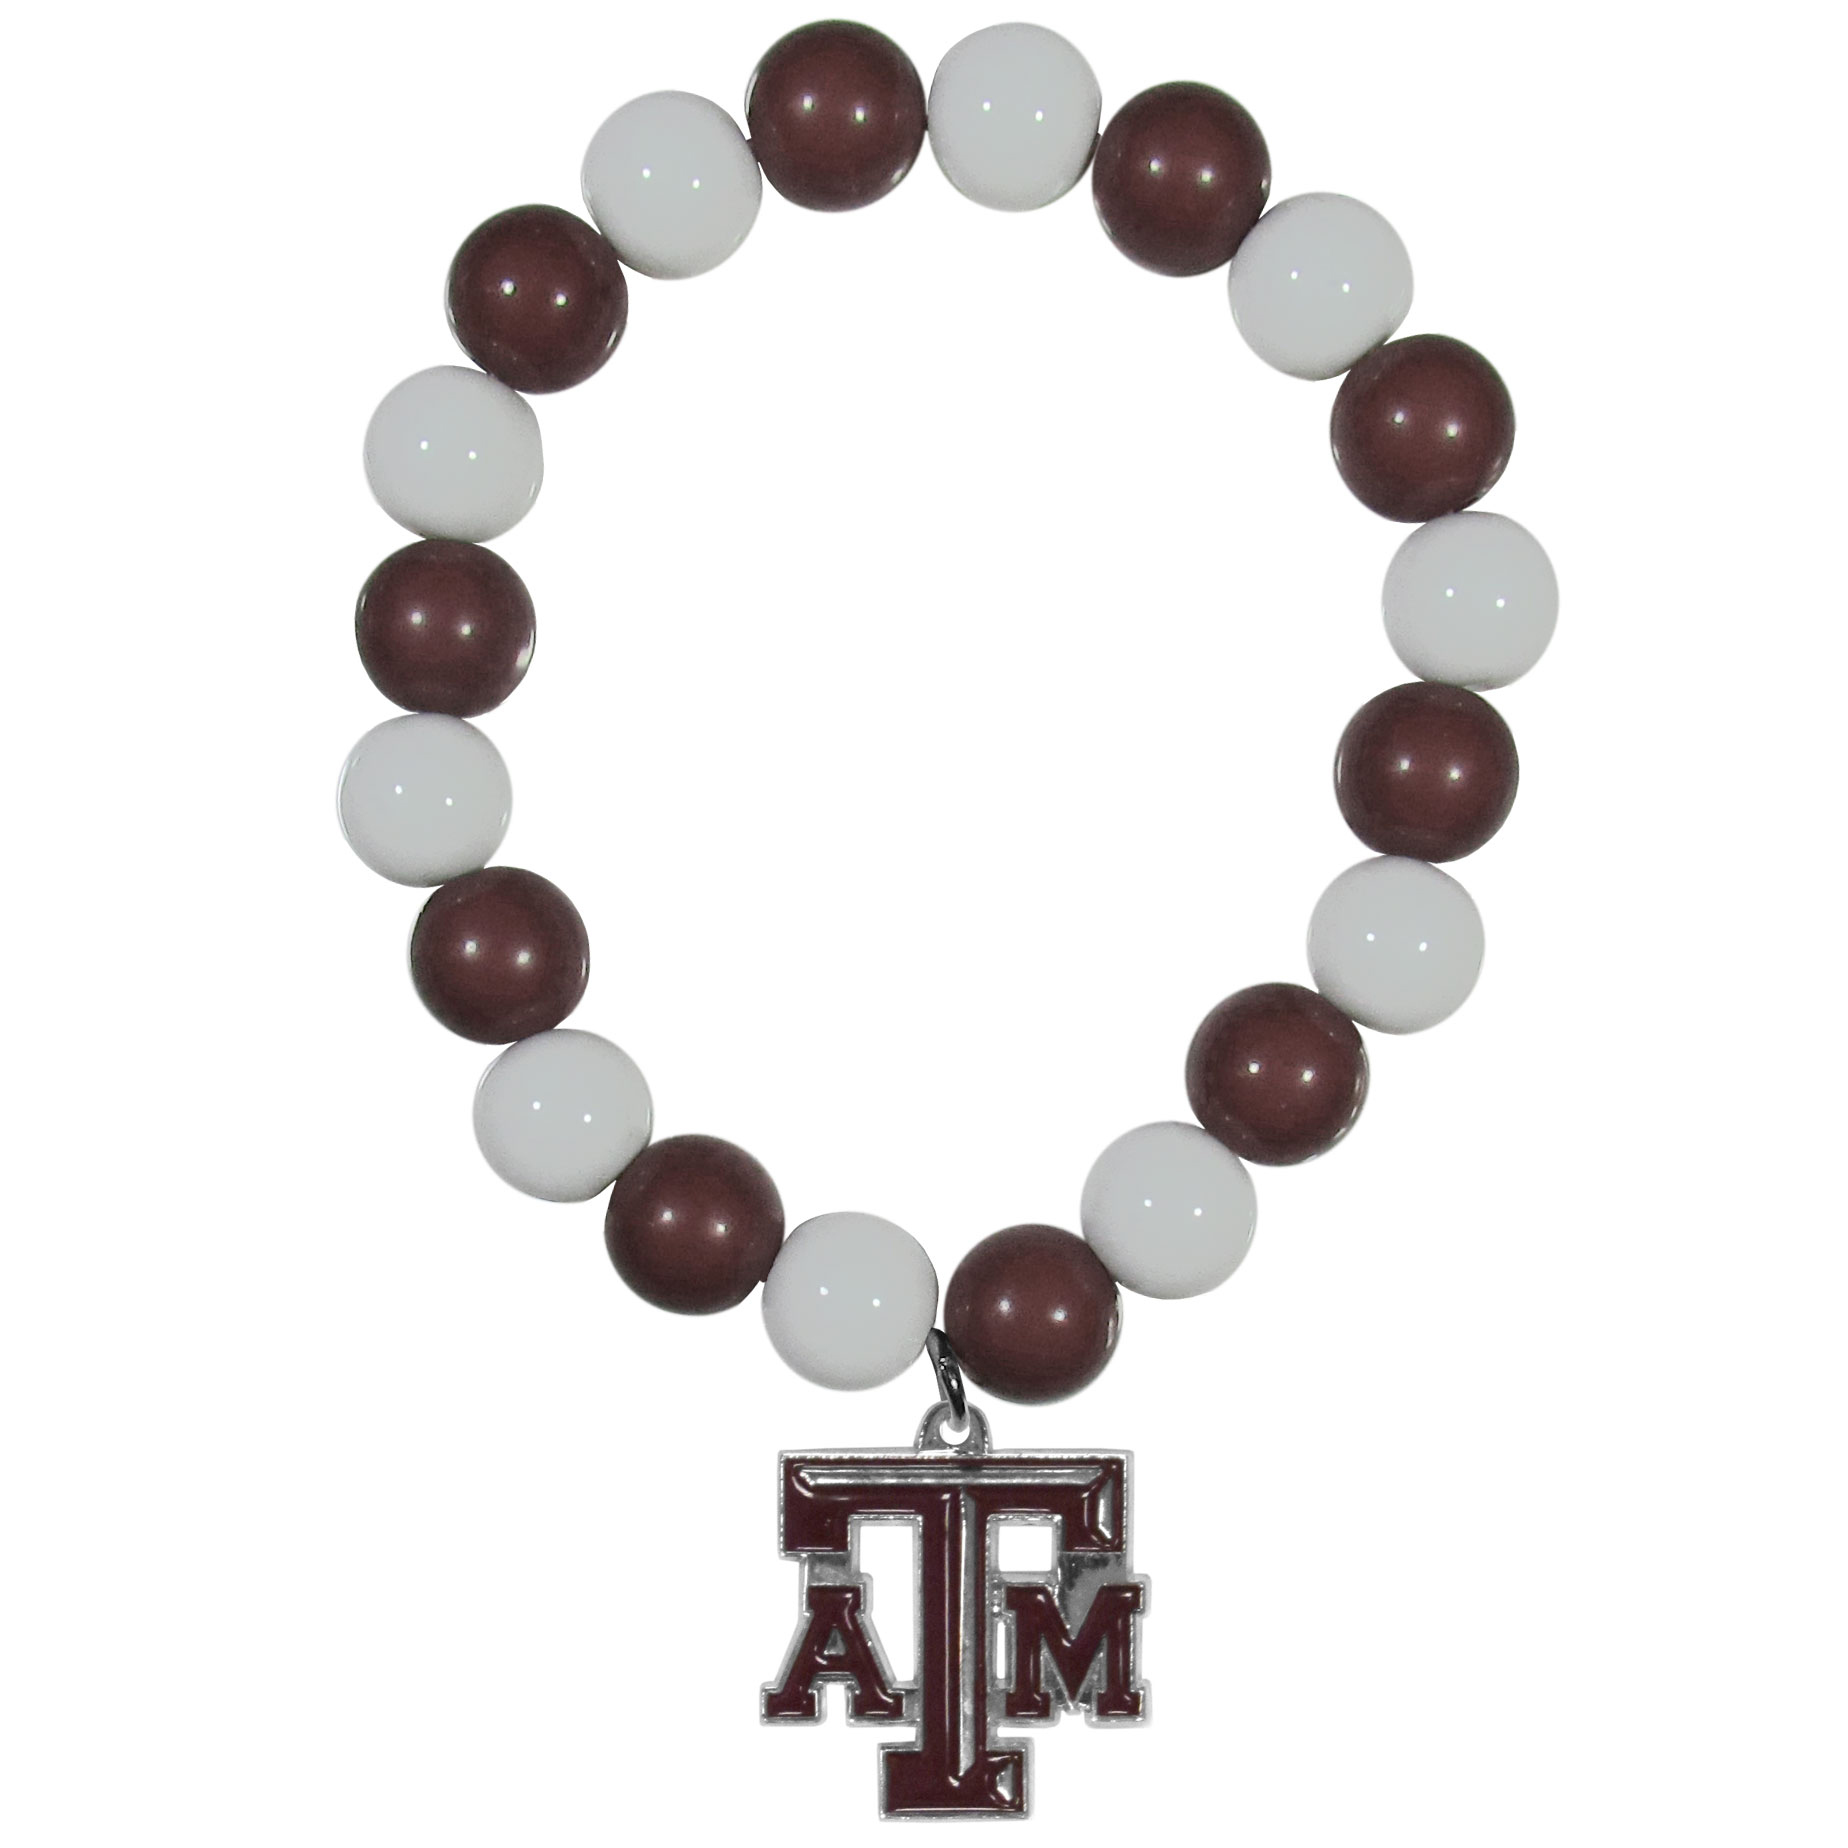 Texas A and M Aggies Fan Bead Bracelet - Flash your Texas A & M Aggies spirit with this bright stretch bracelet. This new bracelet features multicolored team beads on stretch cord with a nickel-free enameled chrome team charm. This bracelet adds the perfect pop of color to your game day accessories.